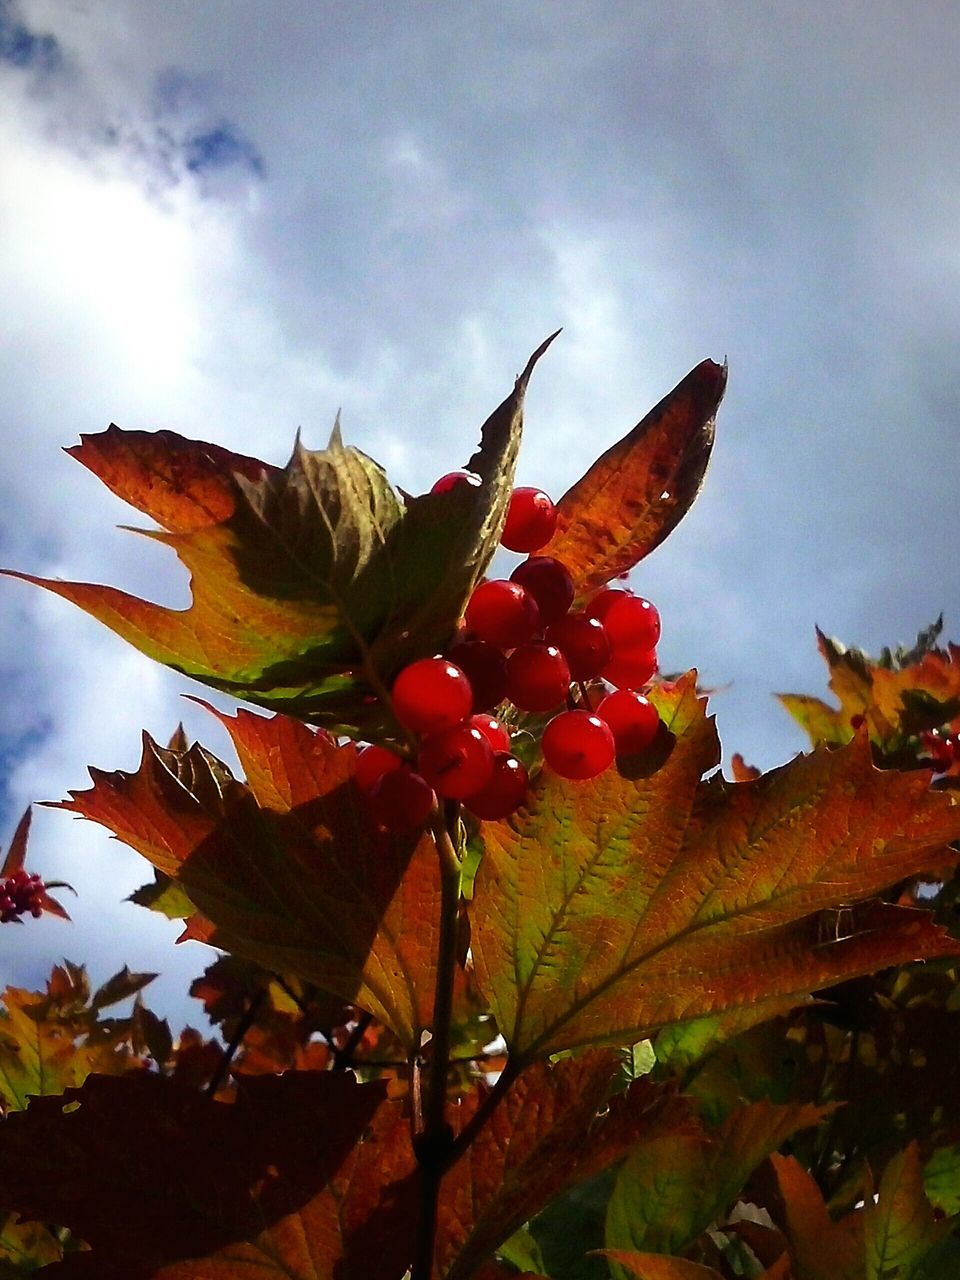 Low Angle View Of Red Currants Growing Against Sky